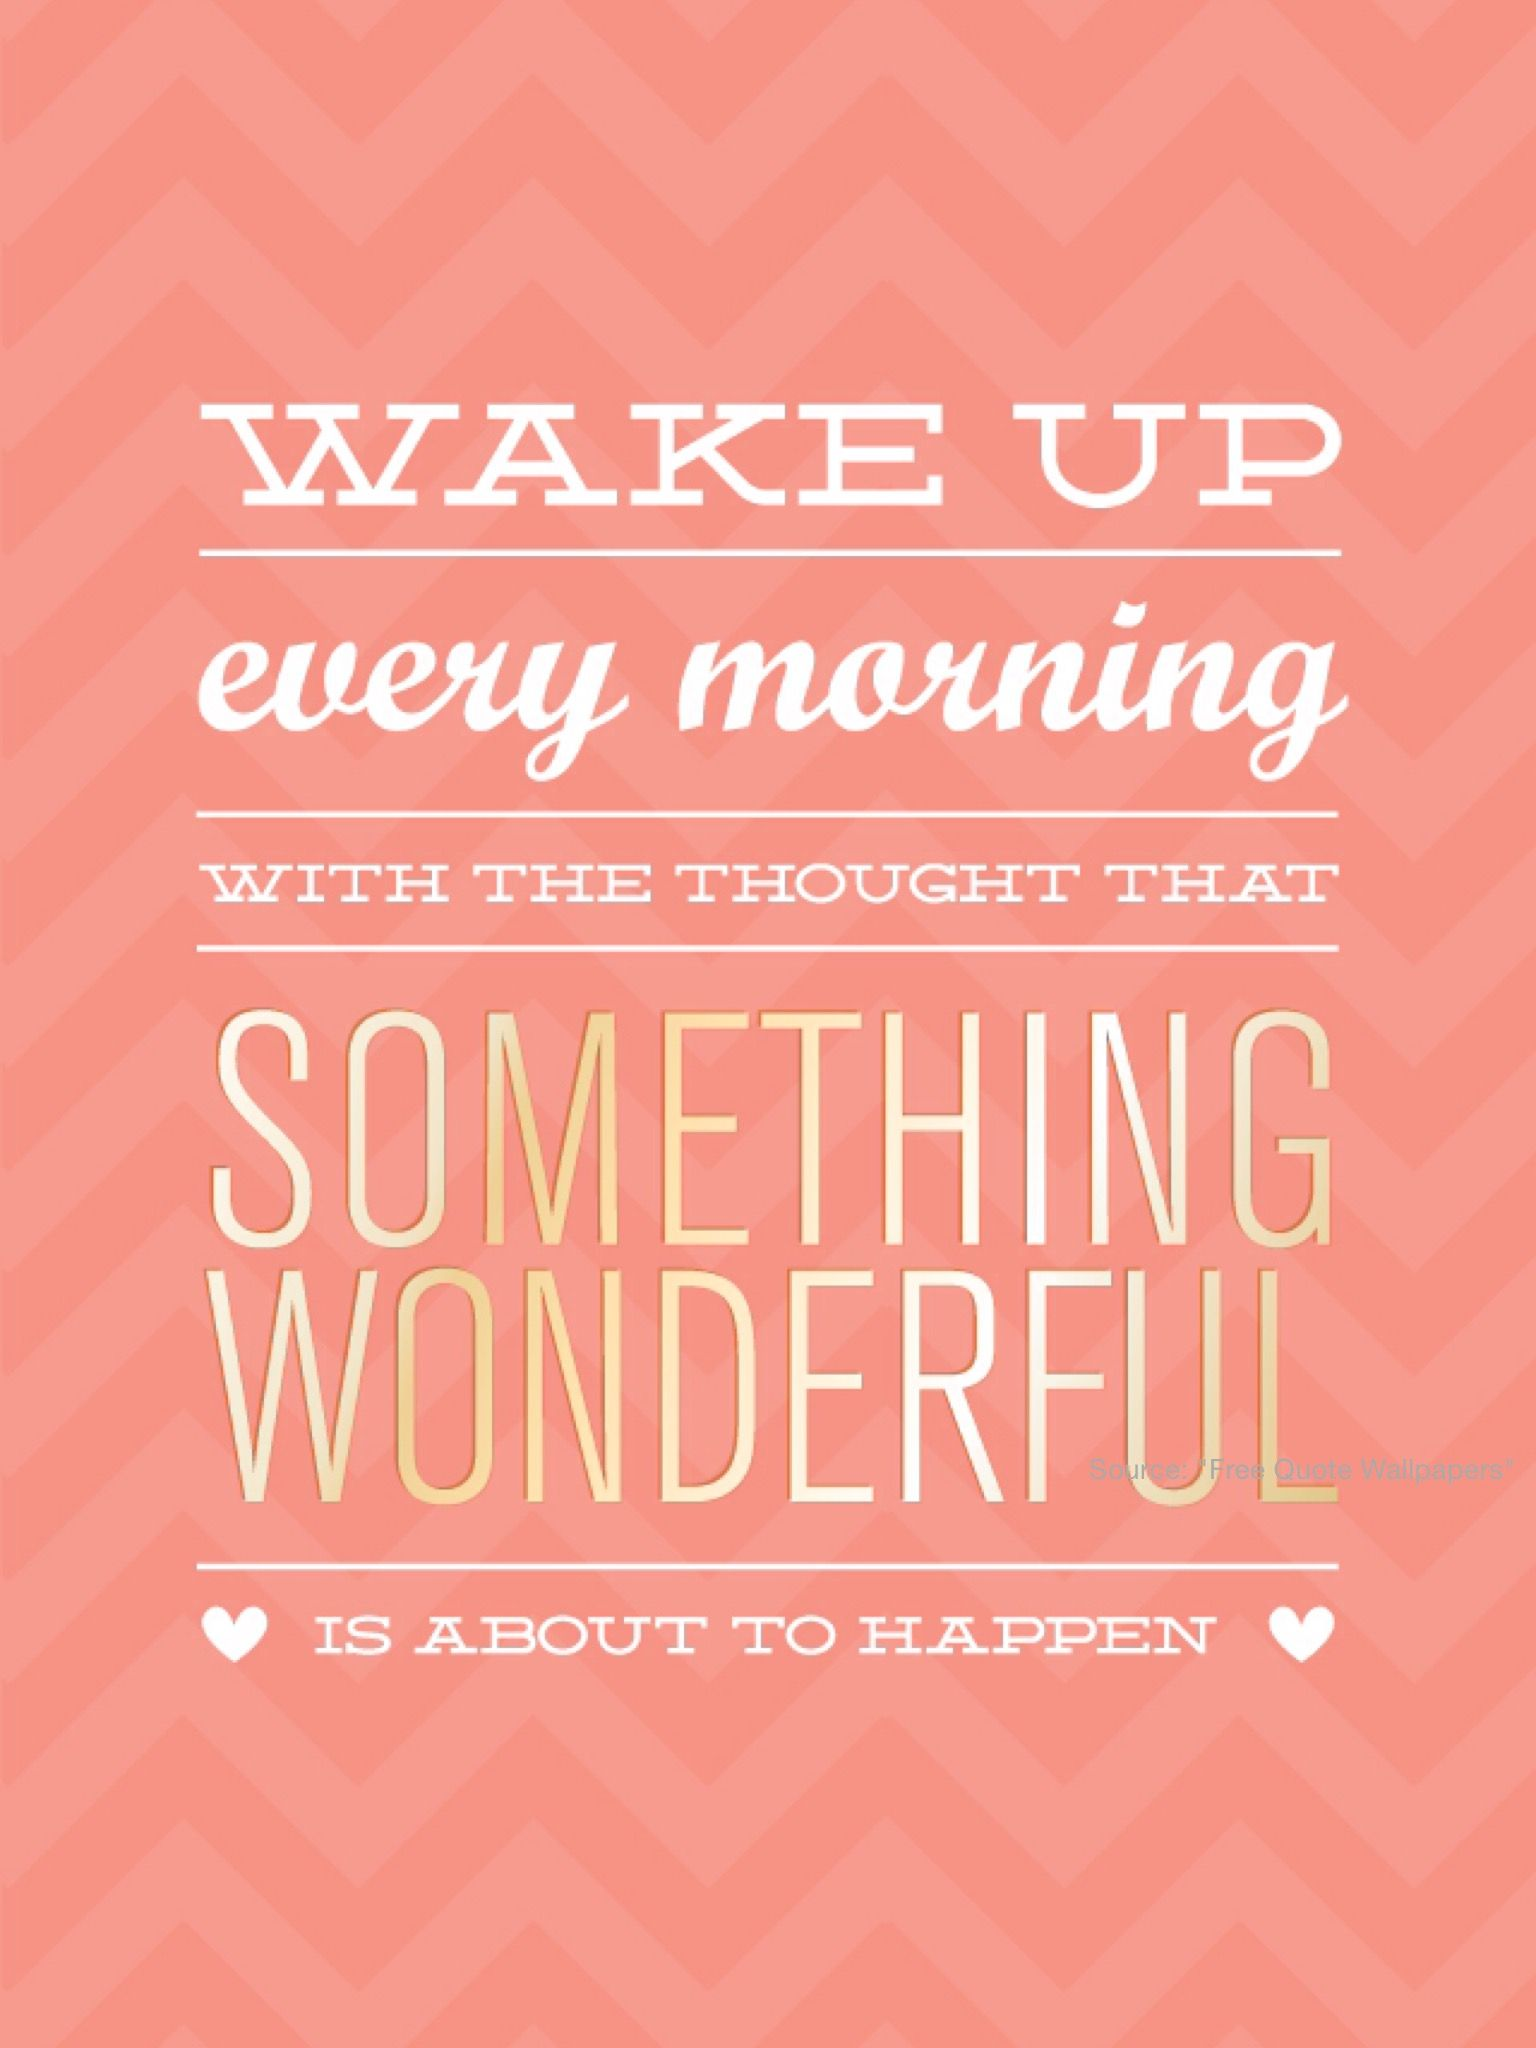 Inspirational MorningsPositive WallpapersPositive Quotes WallpaperIphone